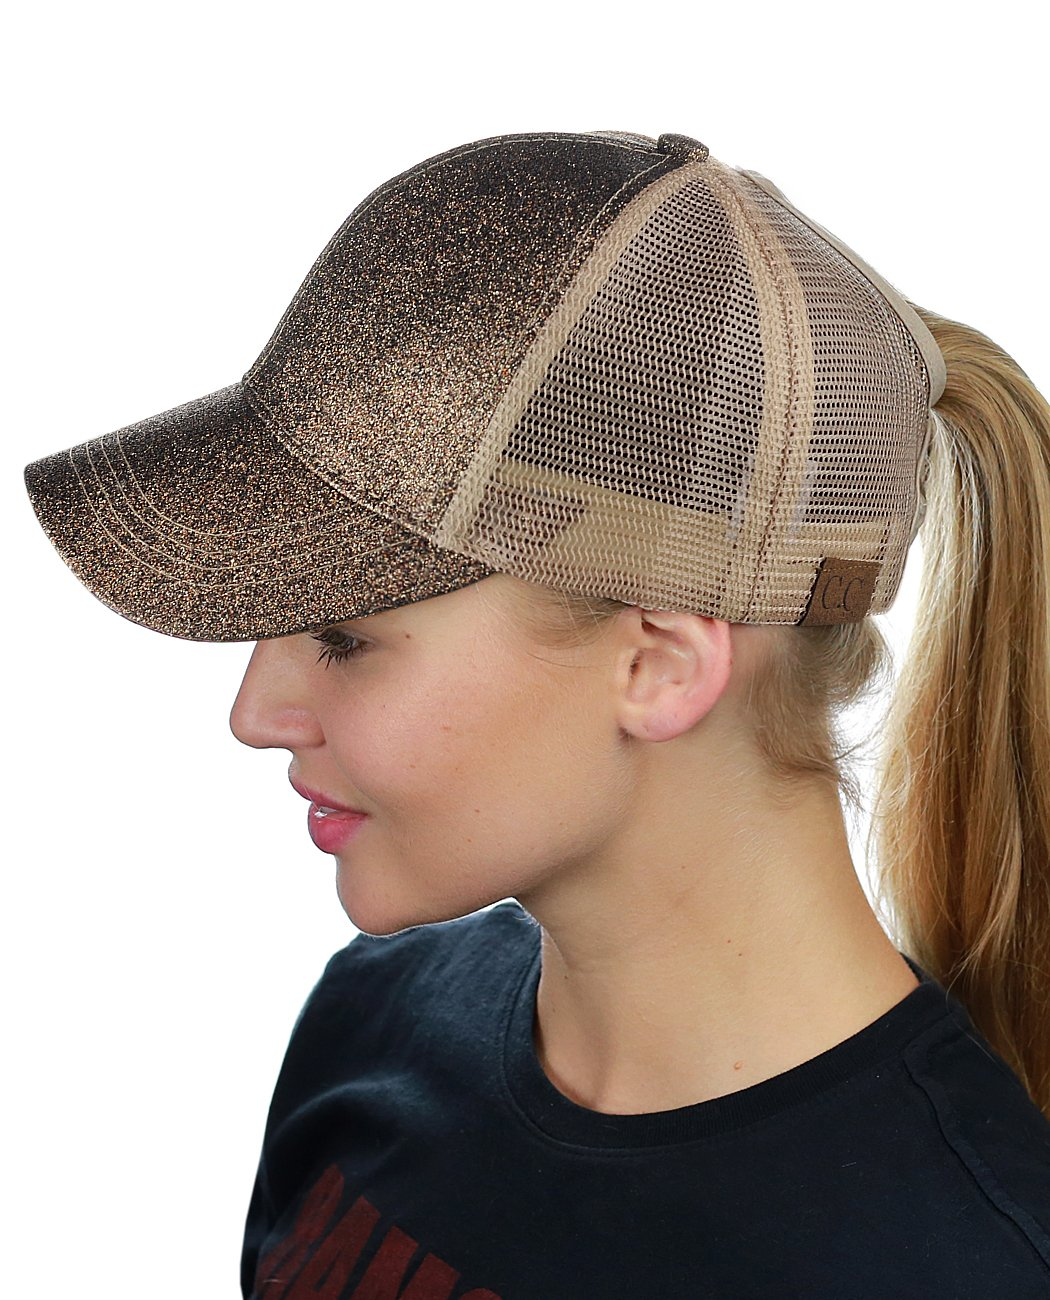 08c256ac3c C.C Ponycap Messy High Bun Ponytail Adjustable Glitter Mesh Trucker Baseball  Cap, Smoky Topaz